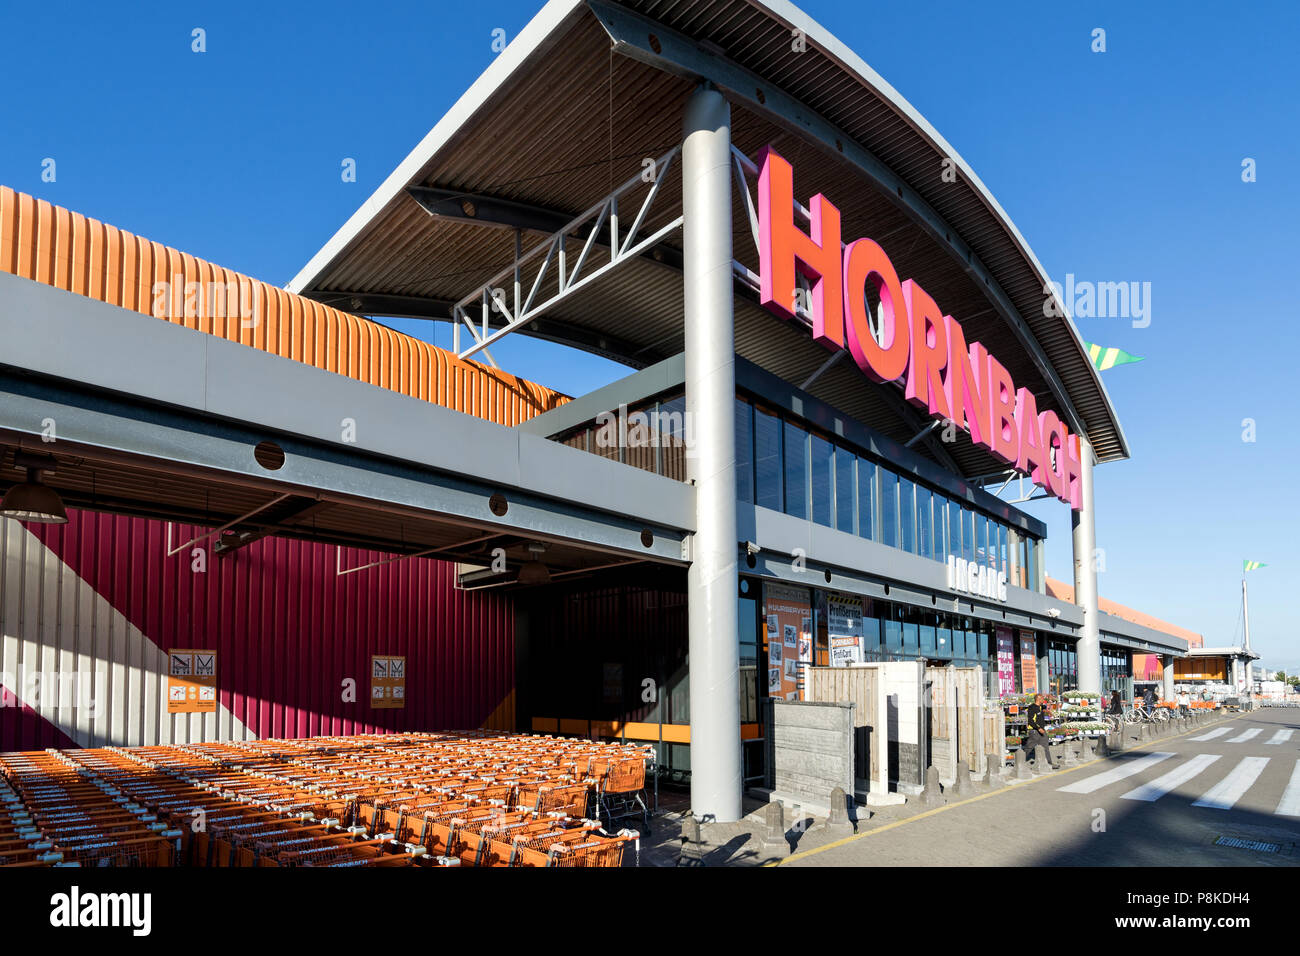 Hornbach hardware store in wateringen the netherlands hornbach is hornbach hardware store in wateringen the netherlands hornbach is a german diy store chain offering home improvement and do it yourself goods solutioingenieria Choice Image